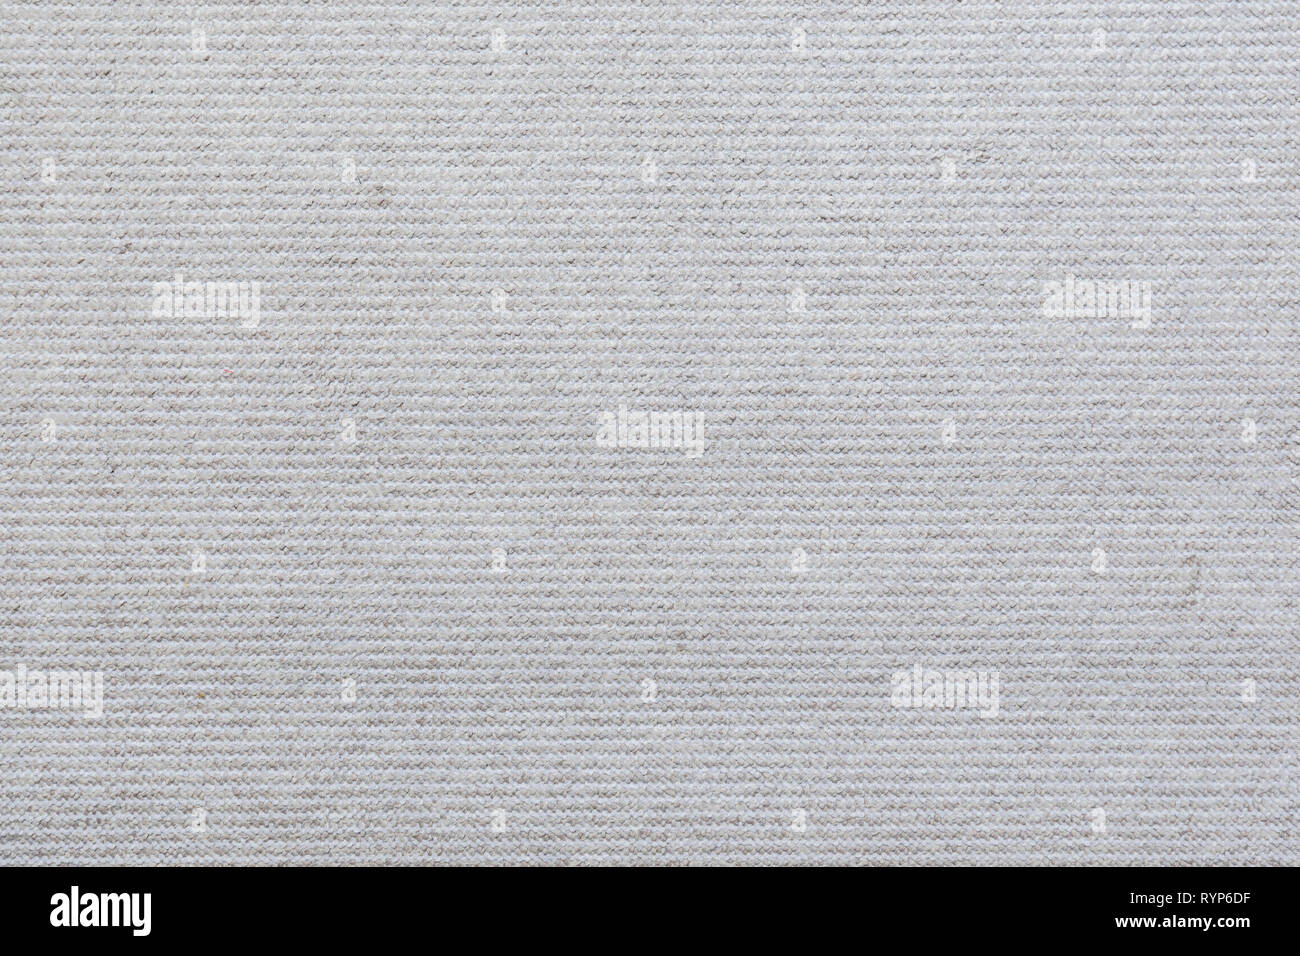 Full frame background of a light, almost white, carpet viewed from above. Stock Photo